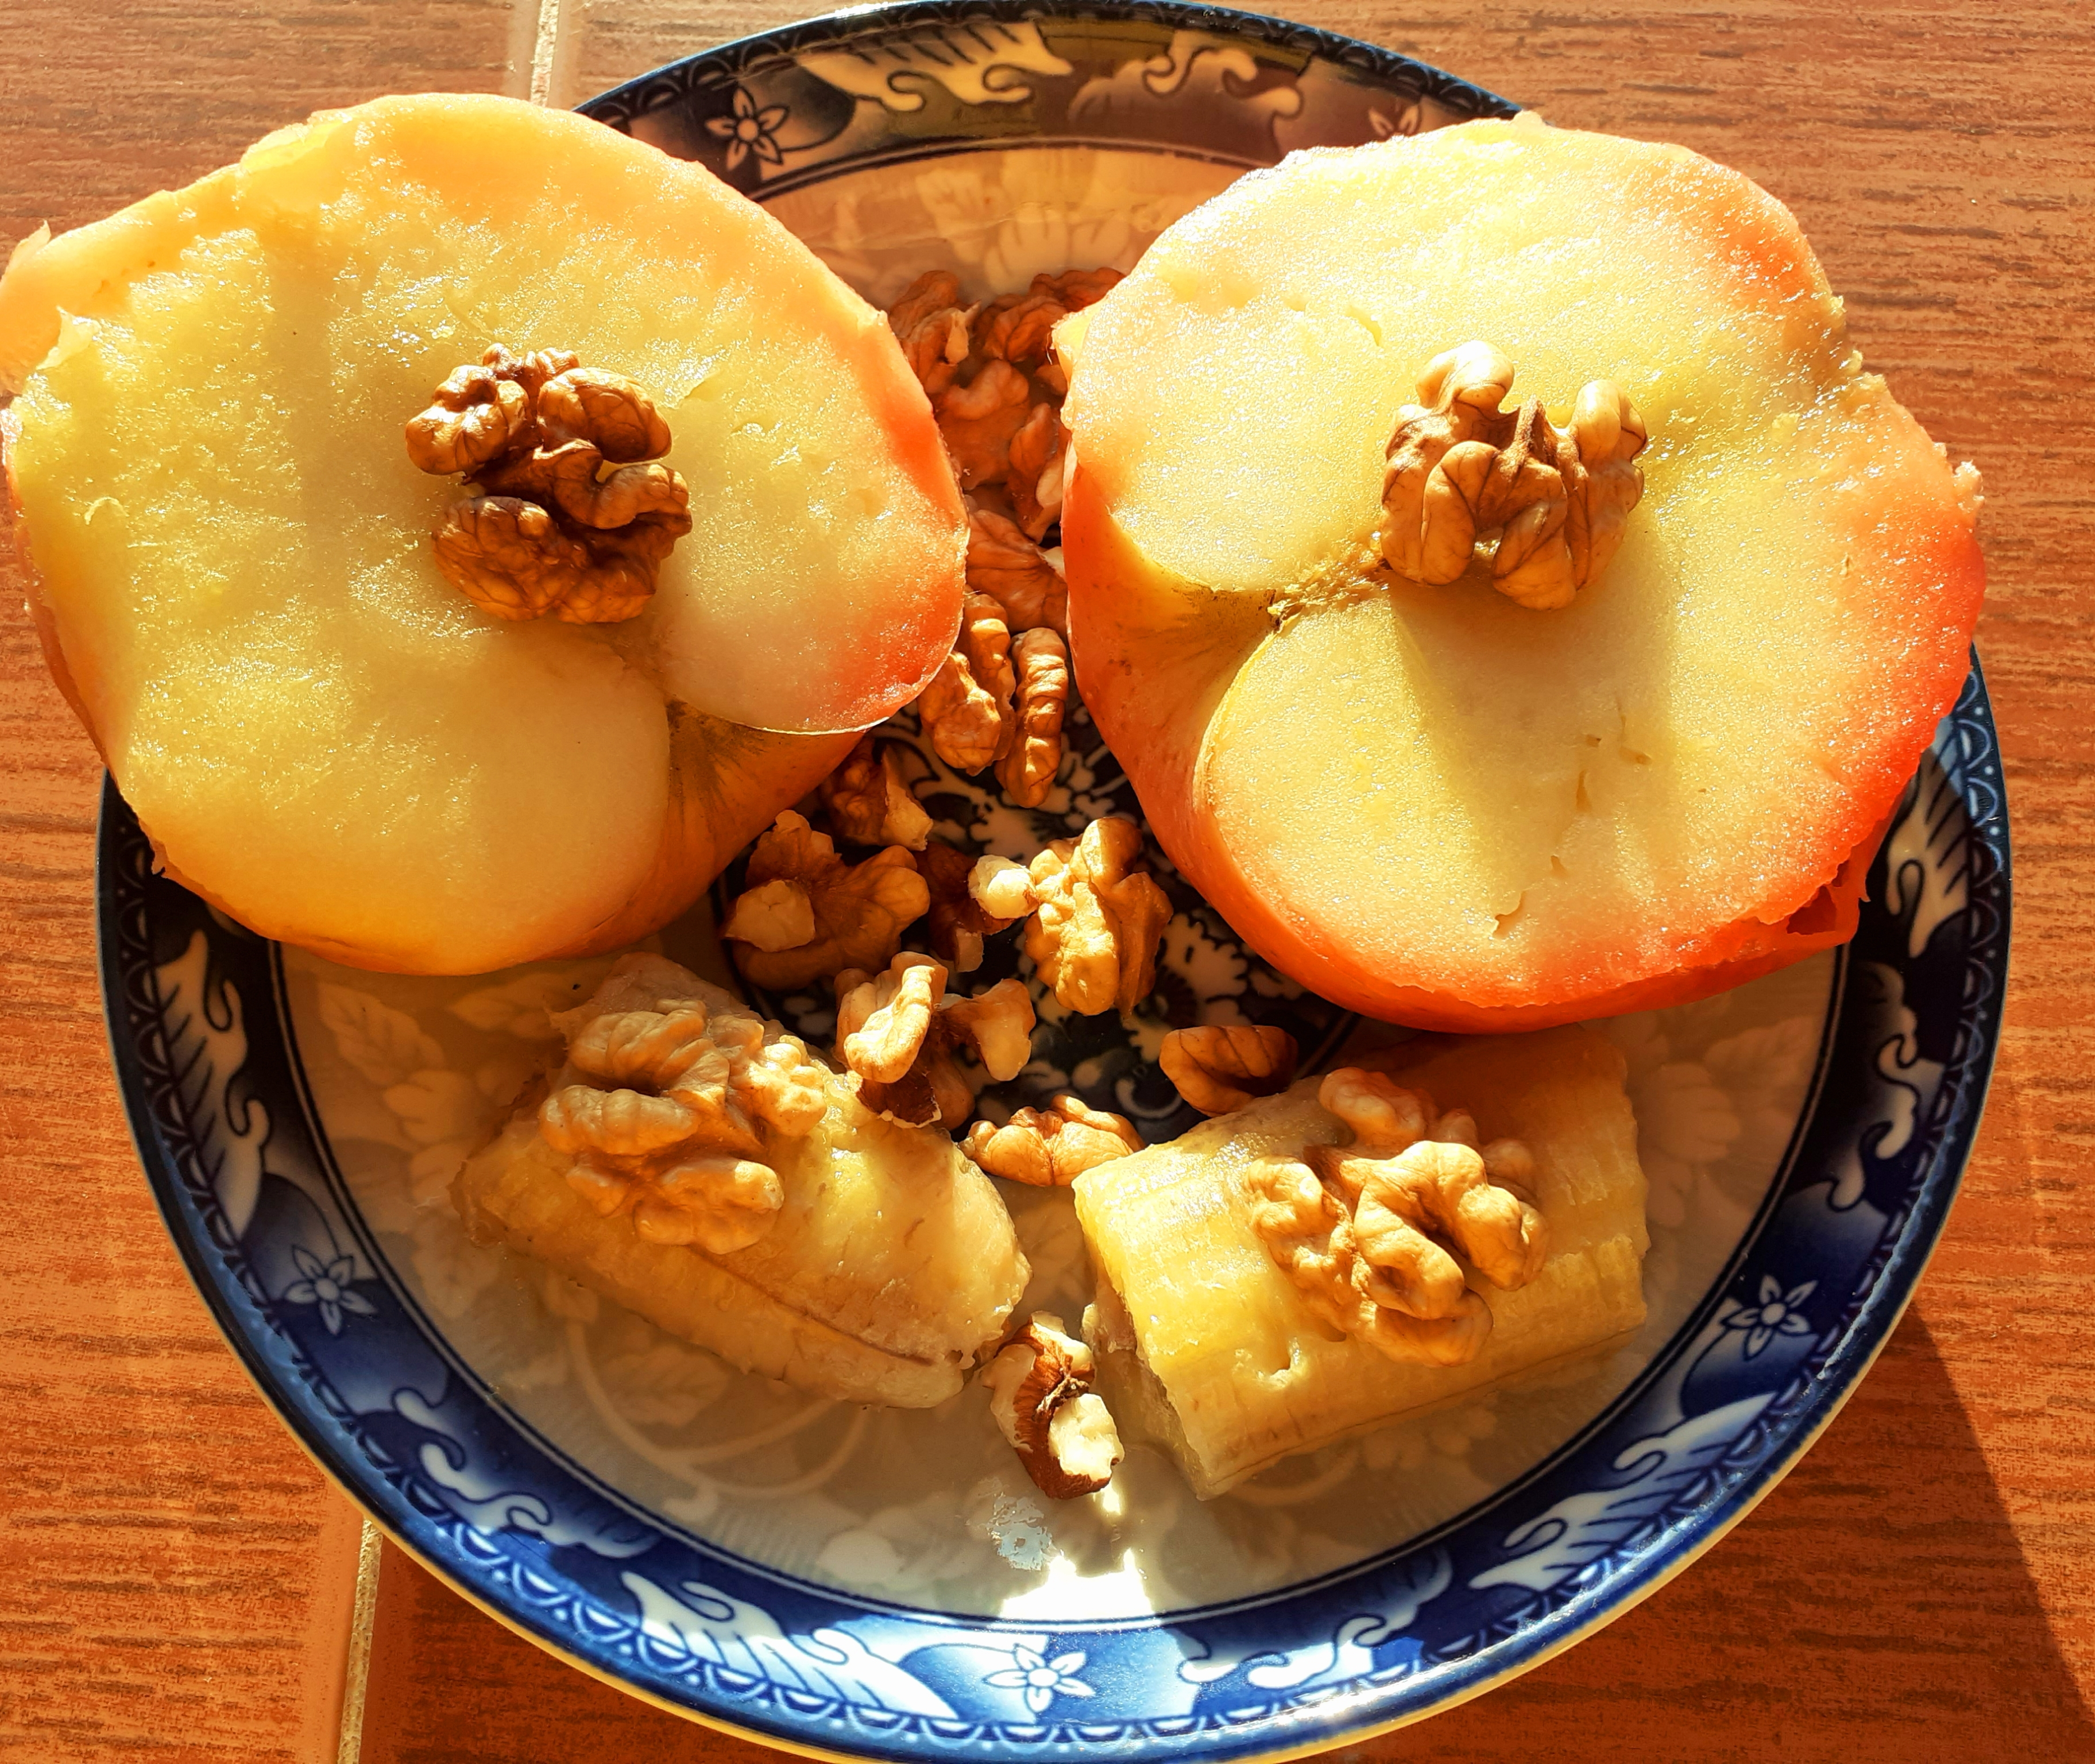 Baked Apple with Banana and Nuts